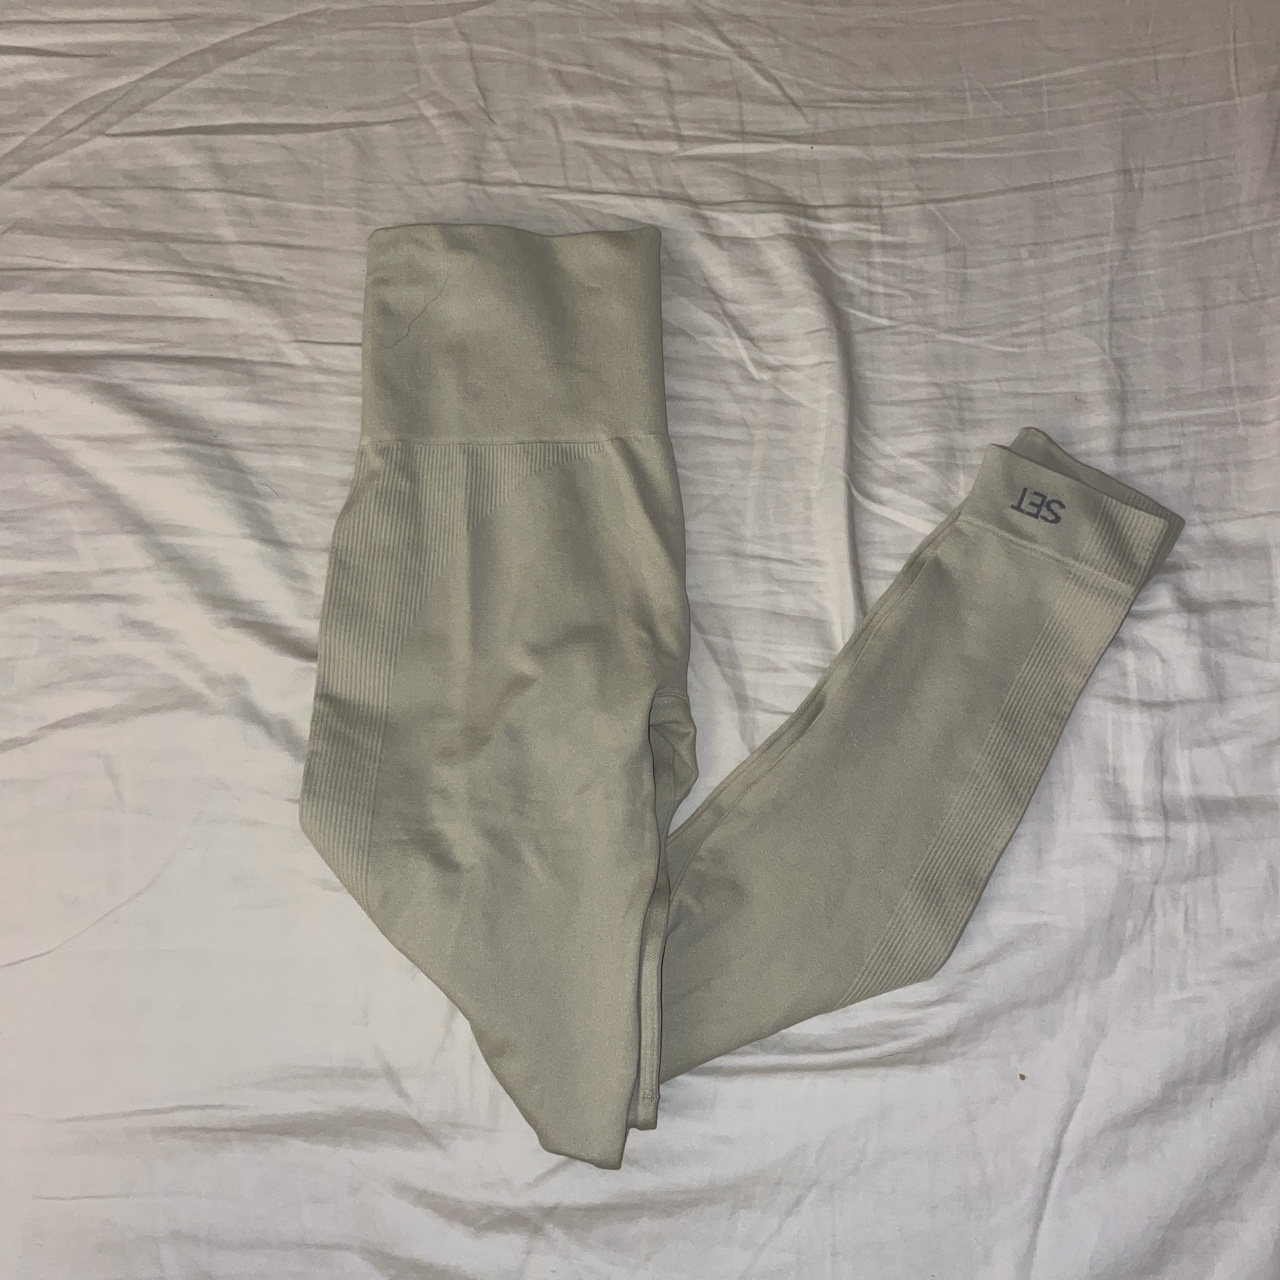 Product Image 1 - SET active leggings. Worn once,